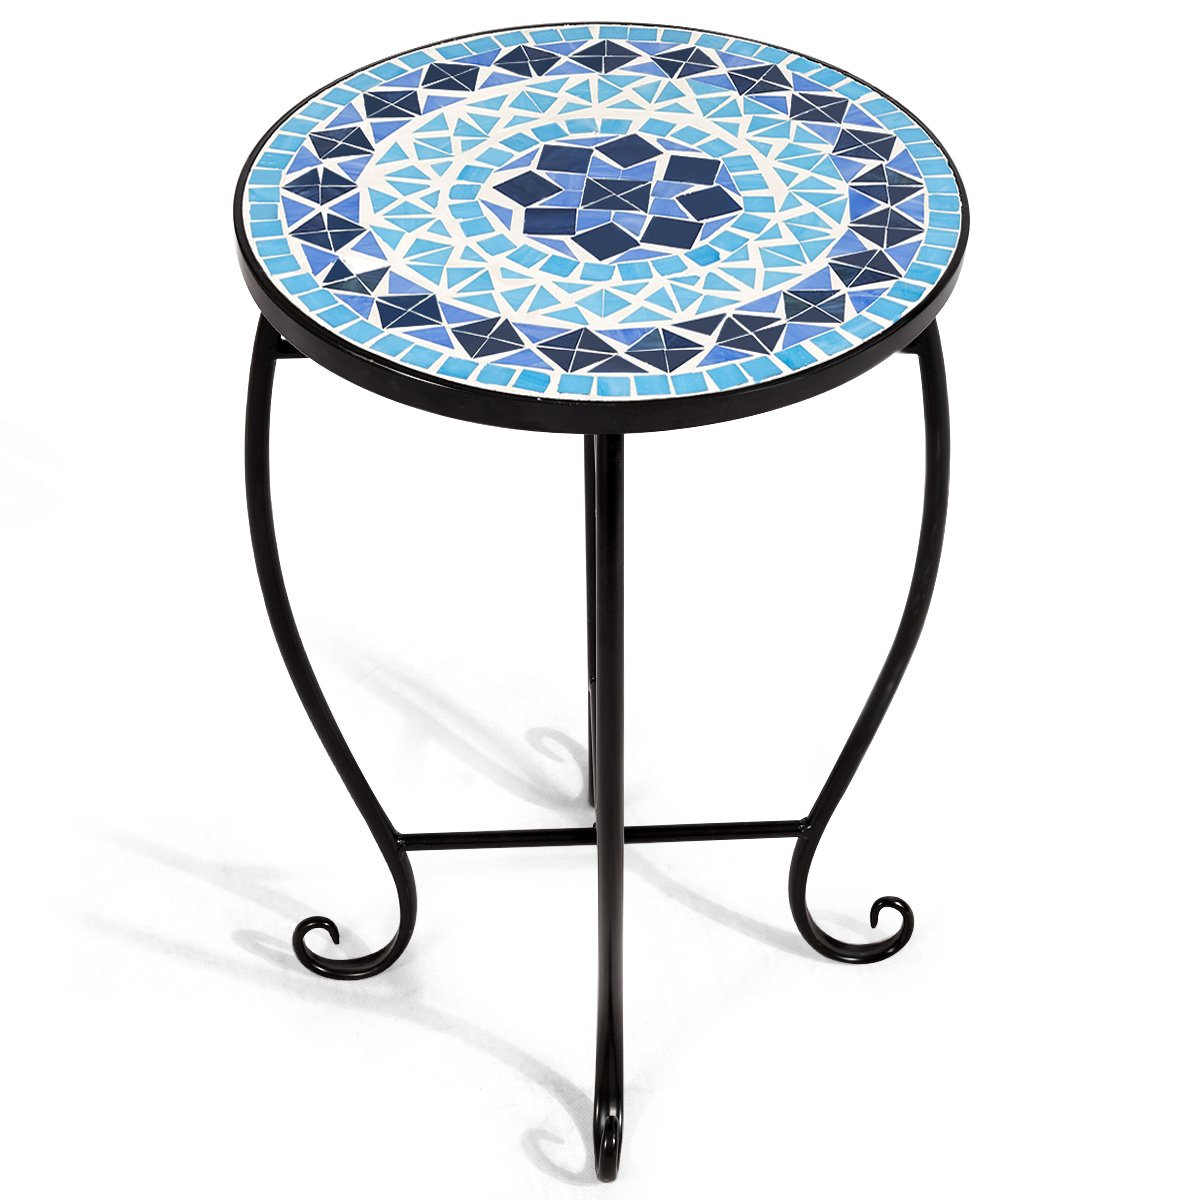 giantex mosaic round side accent table patio plant outdoor stone stand porch beach theme balcony back deck pool decor metal cobalt glass top indoor floor and lamp set bar height